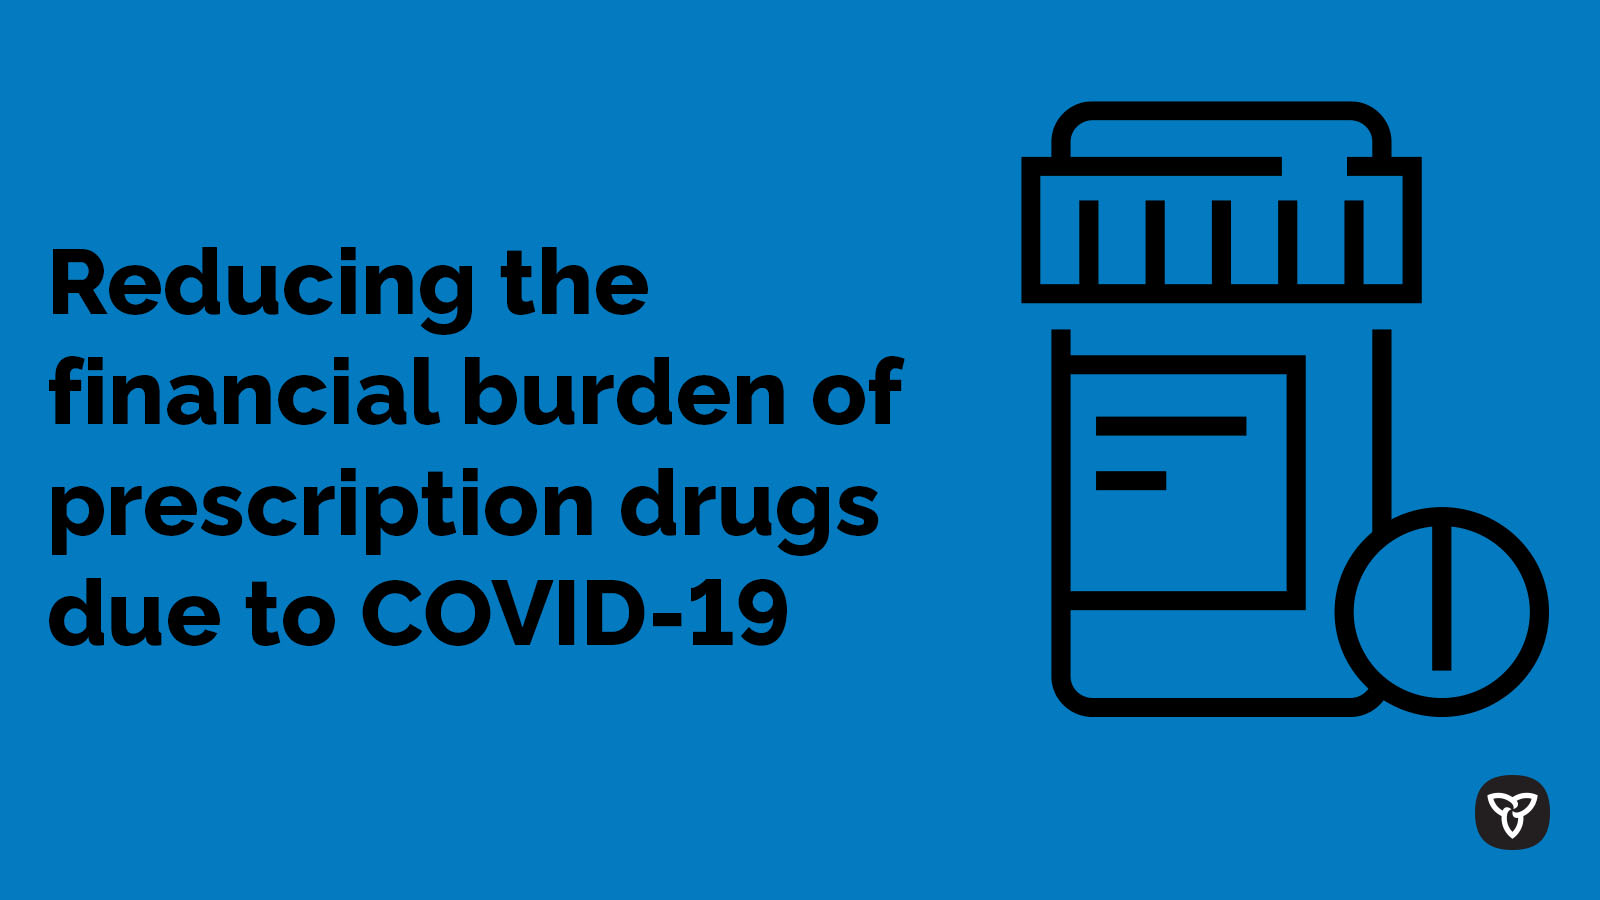 Ontario Making Prescription Drugs More Affordable During COVID-19